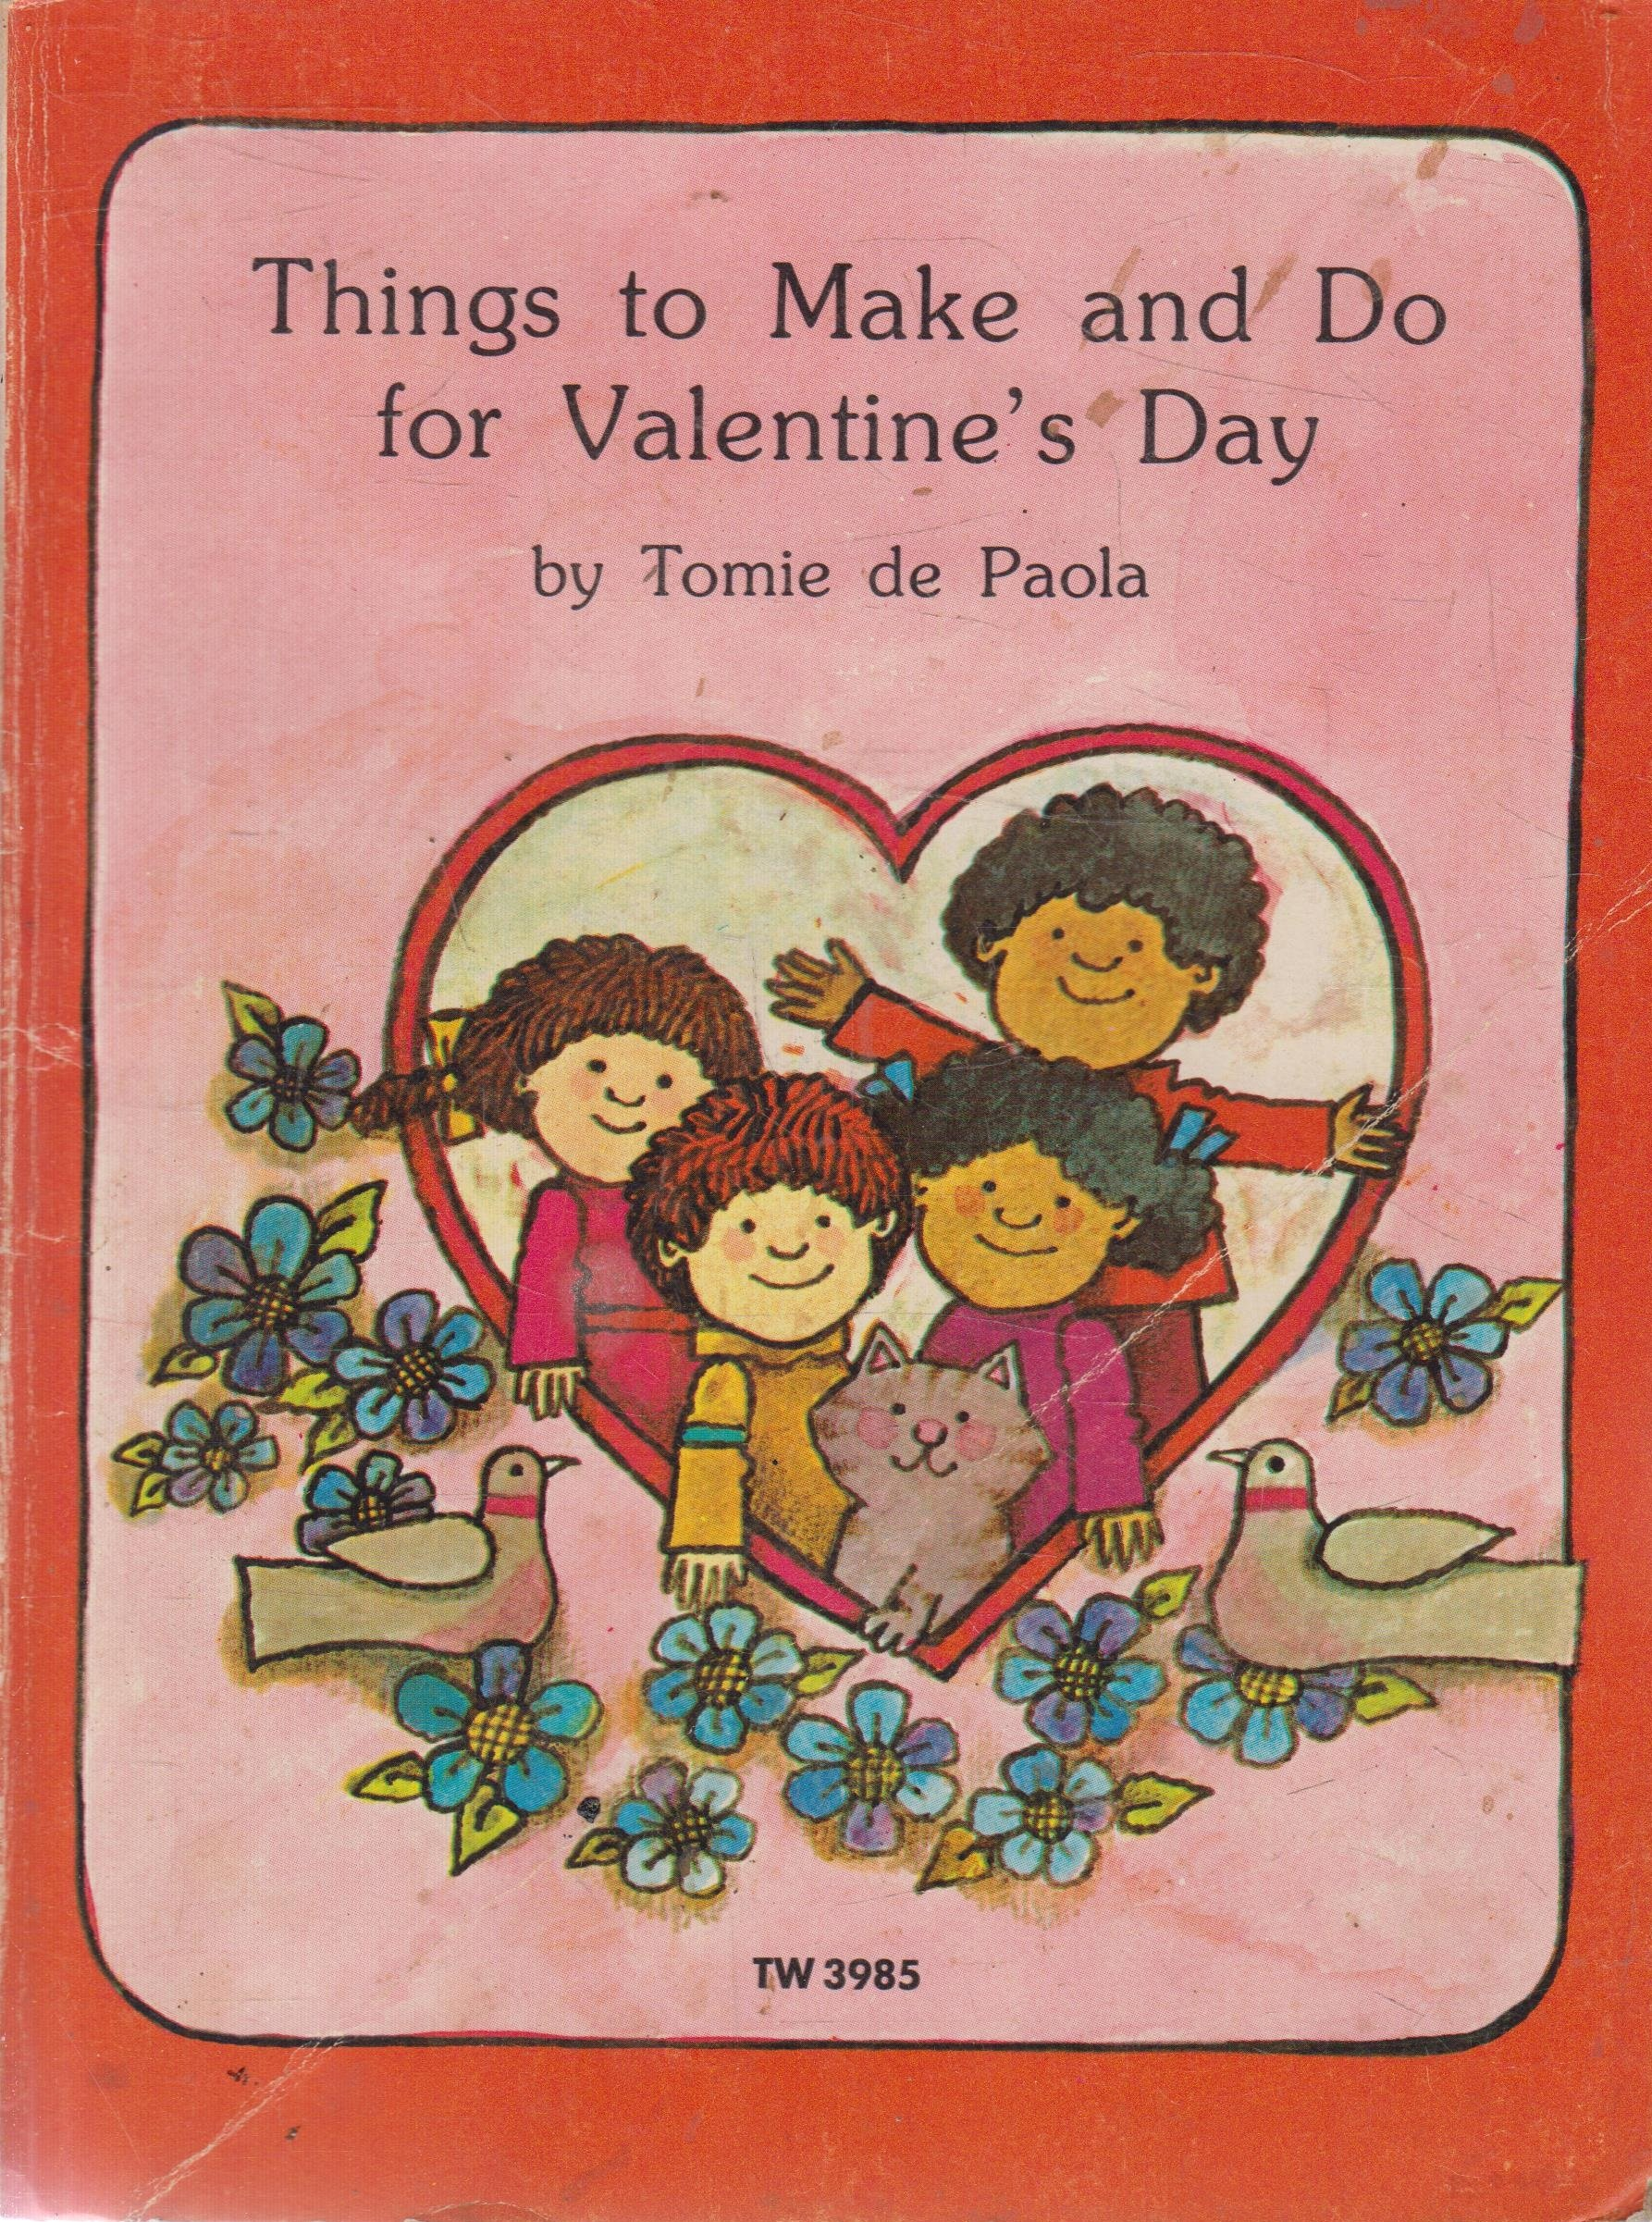 Things to Make and Do for Valentine's Day: TW 3985